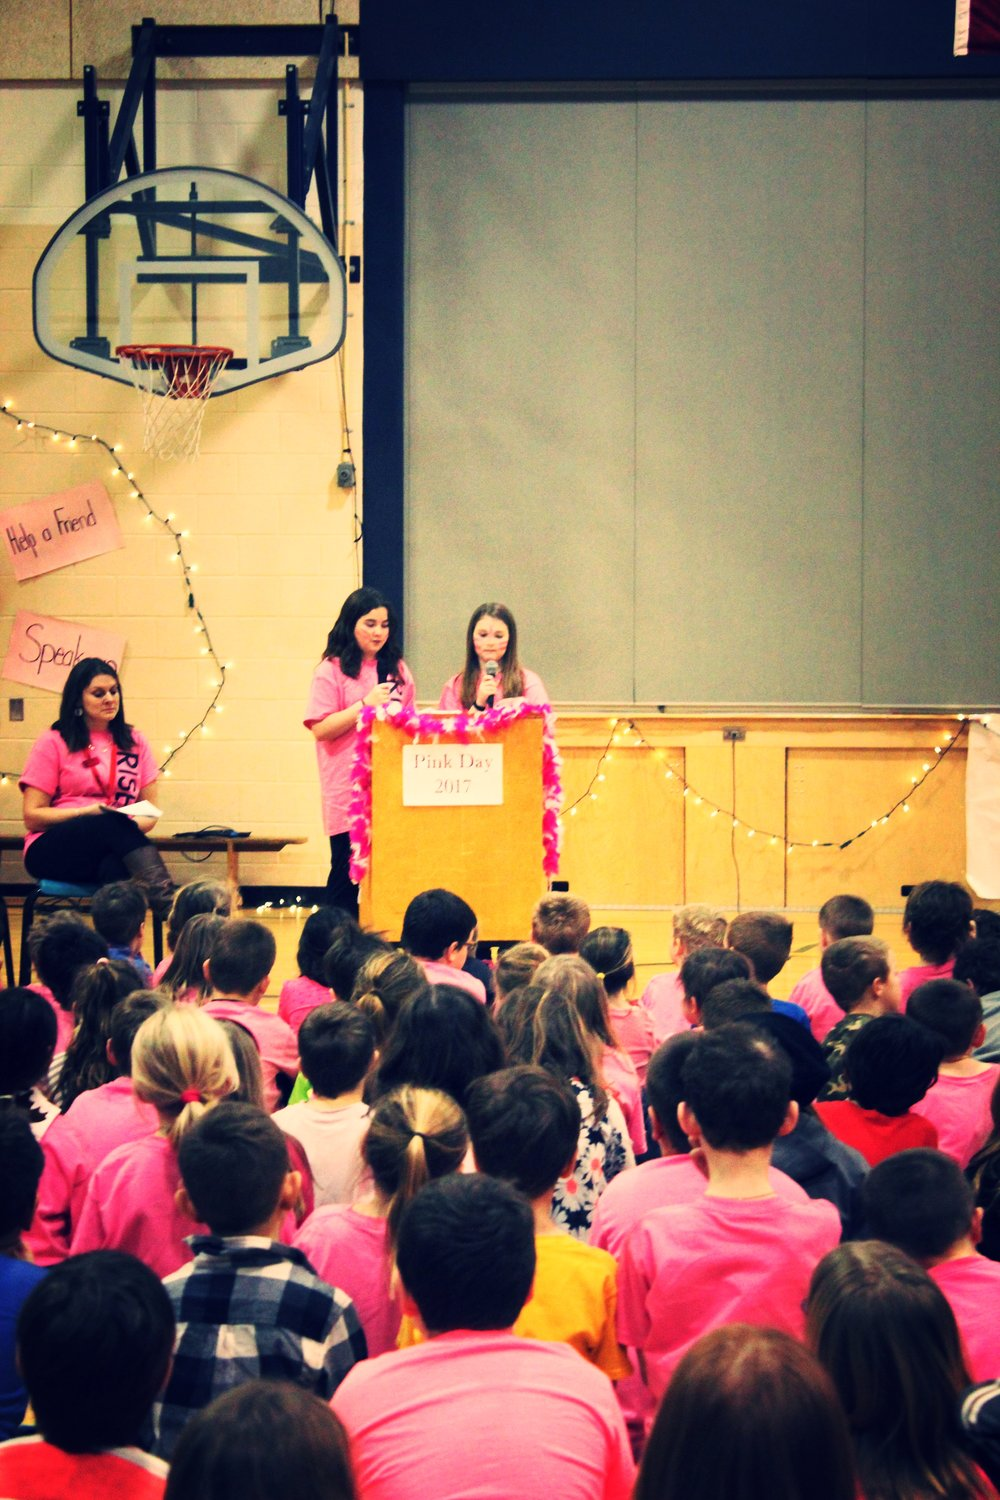 Pink Shirt Day - our whole school had an assembly to share what it means to be a friend and how to include each other. This is a day where we focused on the importance of working together to make our world a better place for all! Working together to make a difference, using our kind words, inclusion and sharing to allow everyone to feel safe, accepted and happy.